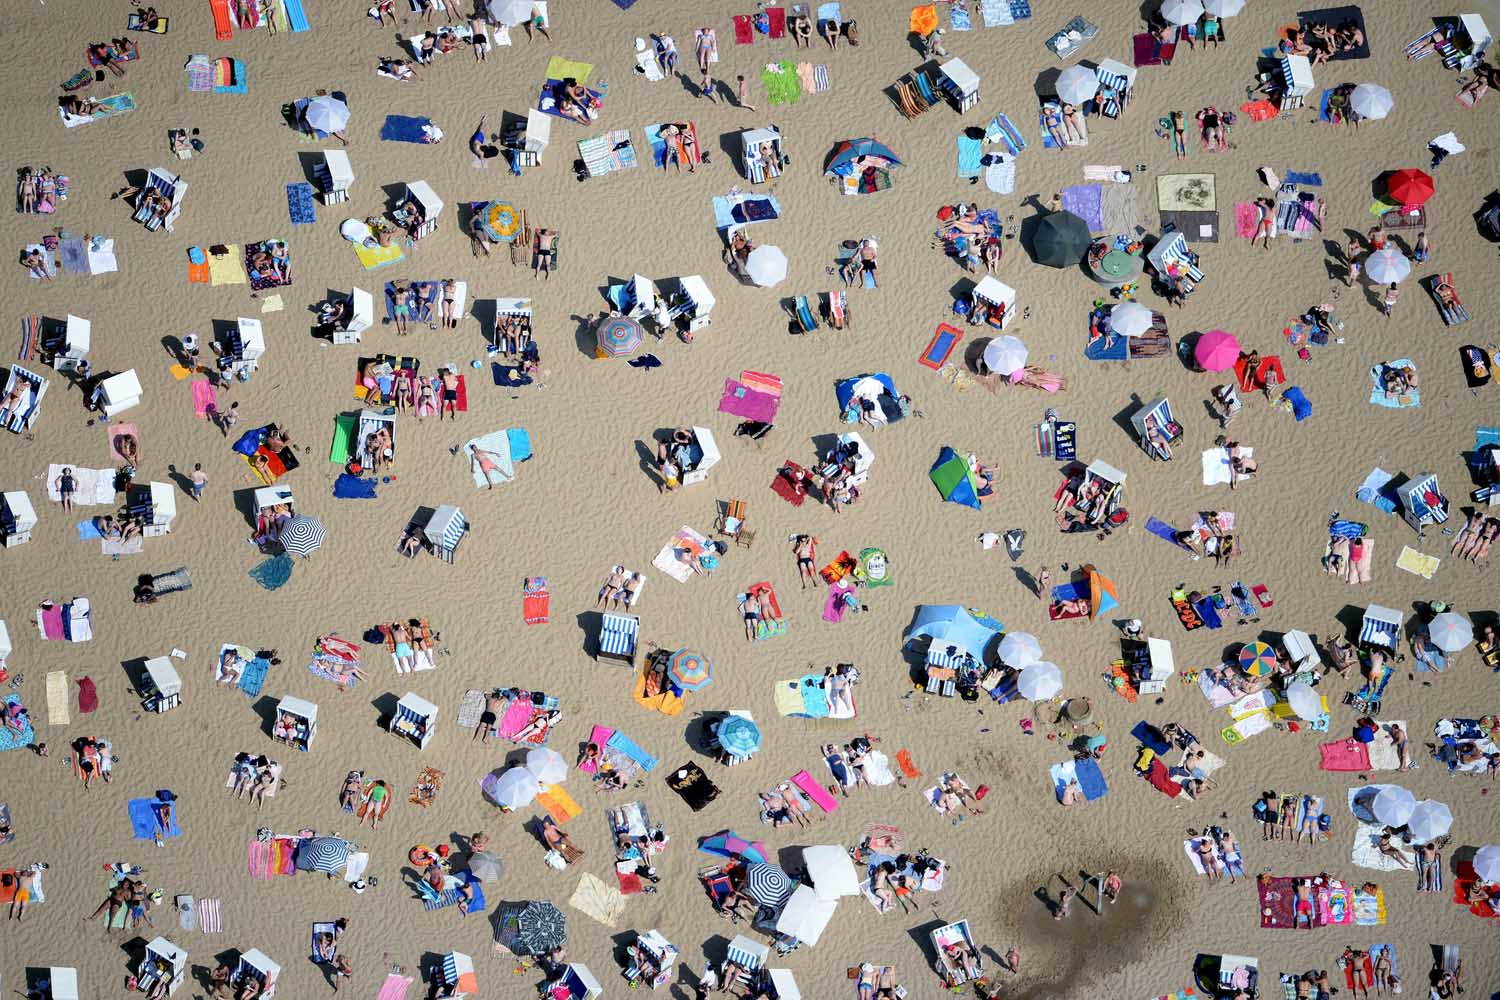 Jun. 8, 2014. Numerous people enjoy the hot summer weather at the Wannsee in Berlin. The summer weather is set to continue over the next days.